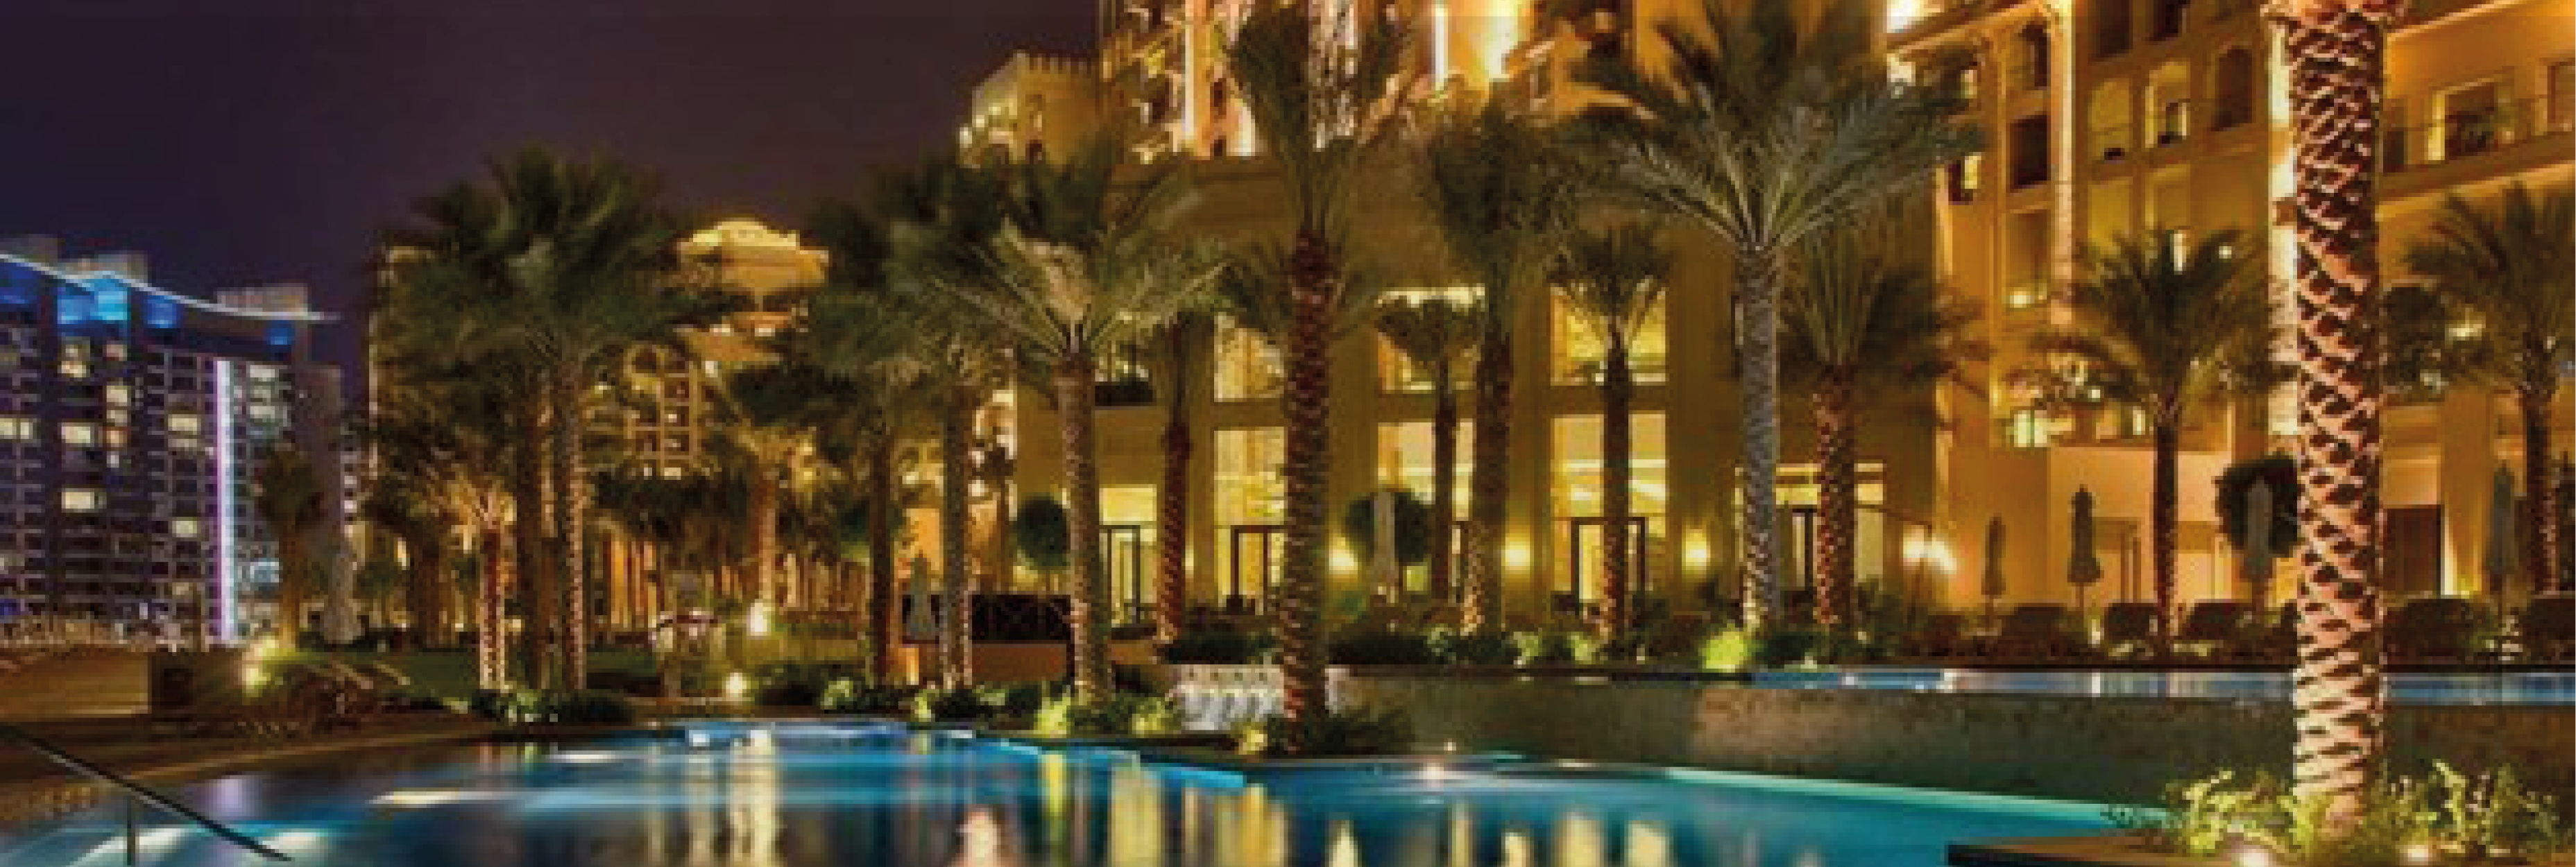 Fairmont The Palm Dubai is reducing food waste and saving $140,000 per year